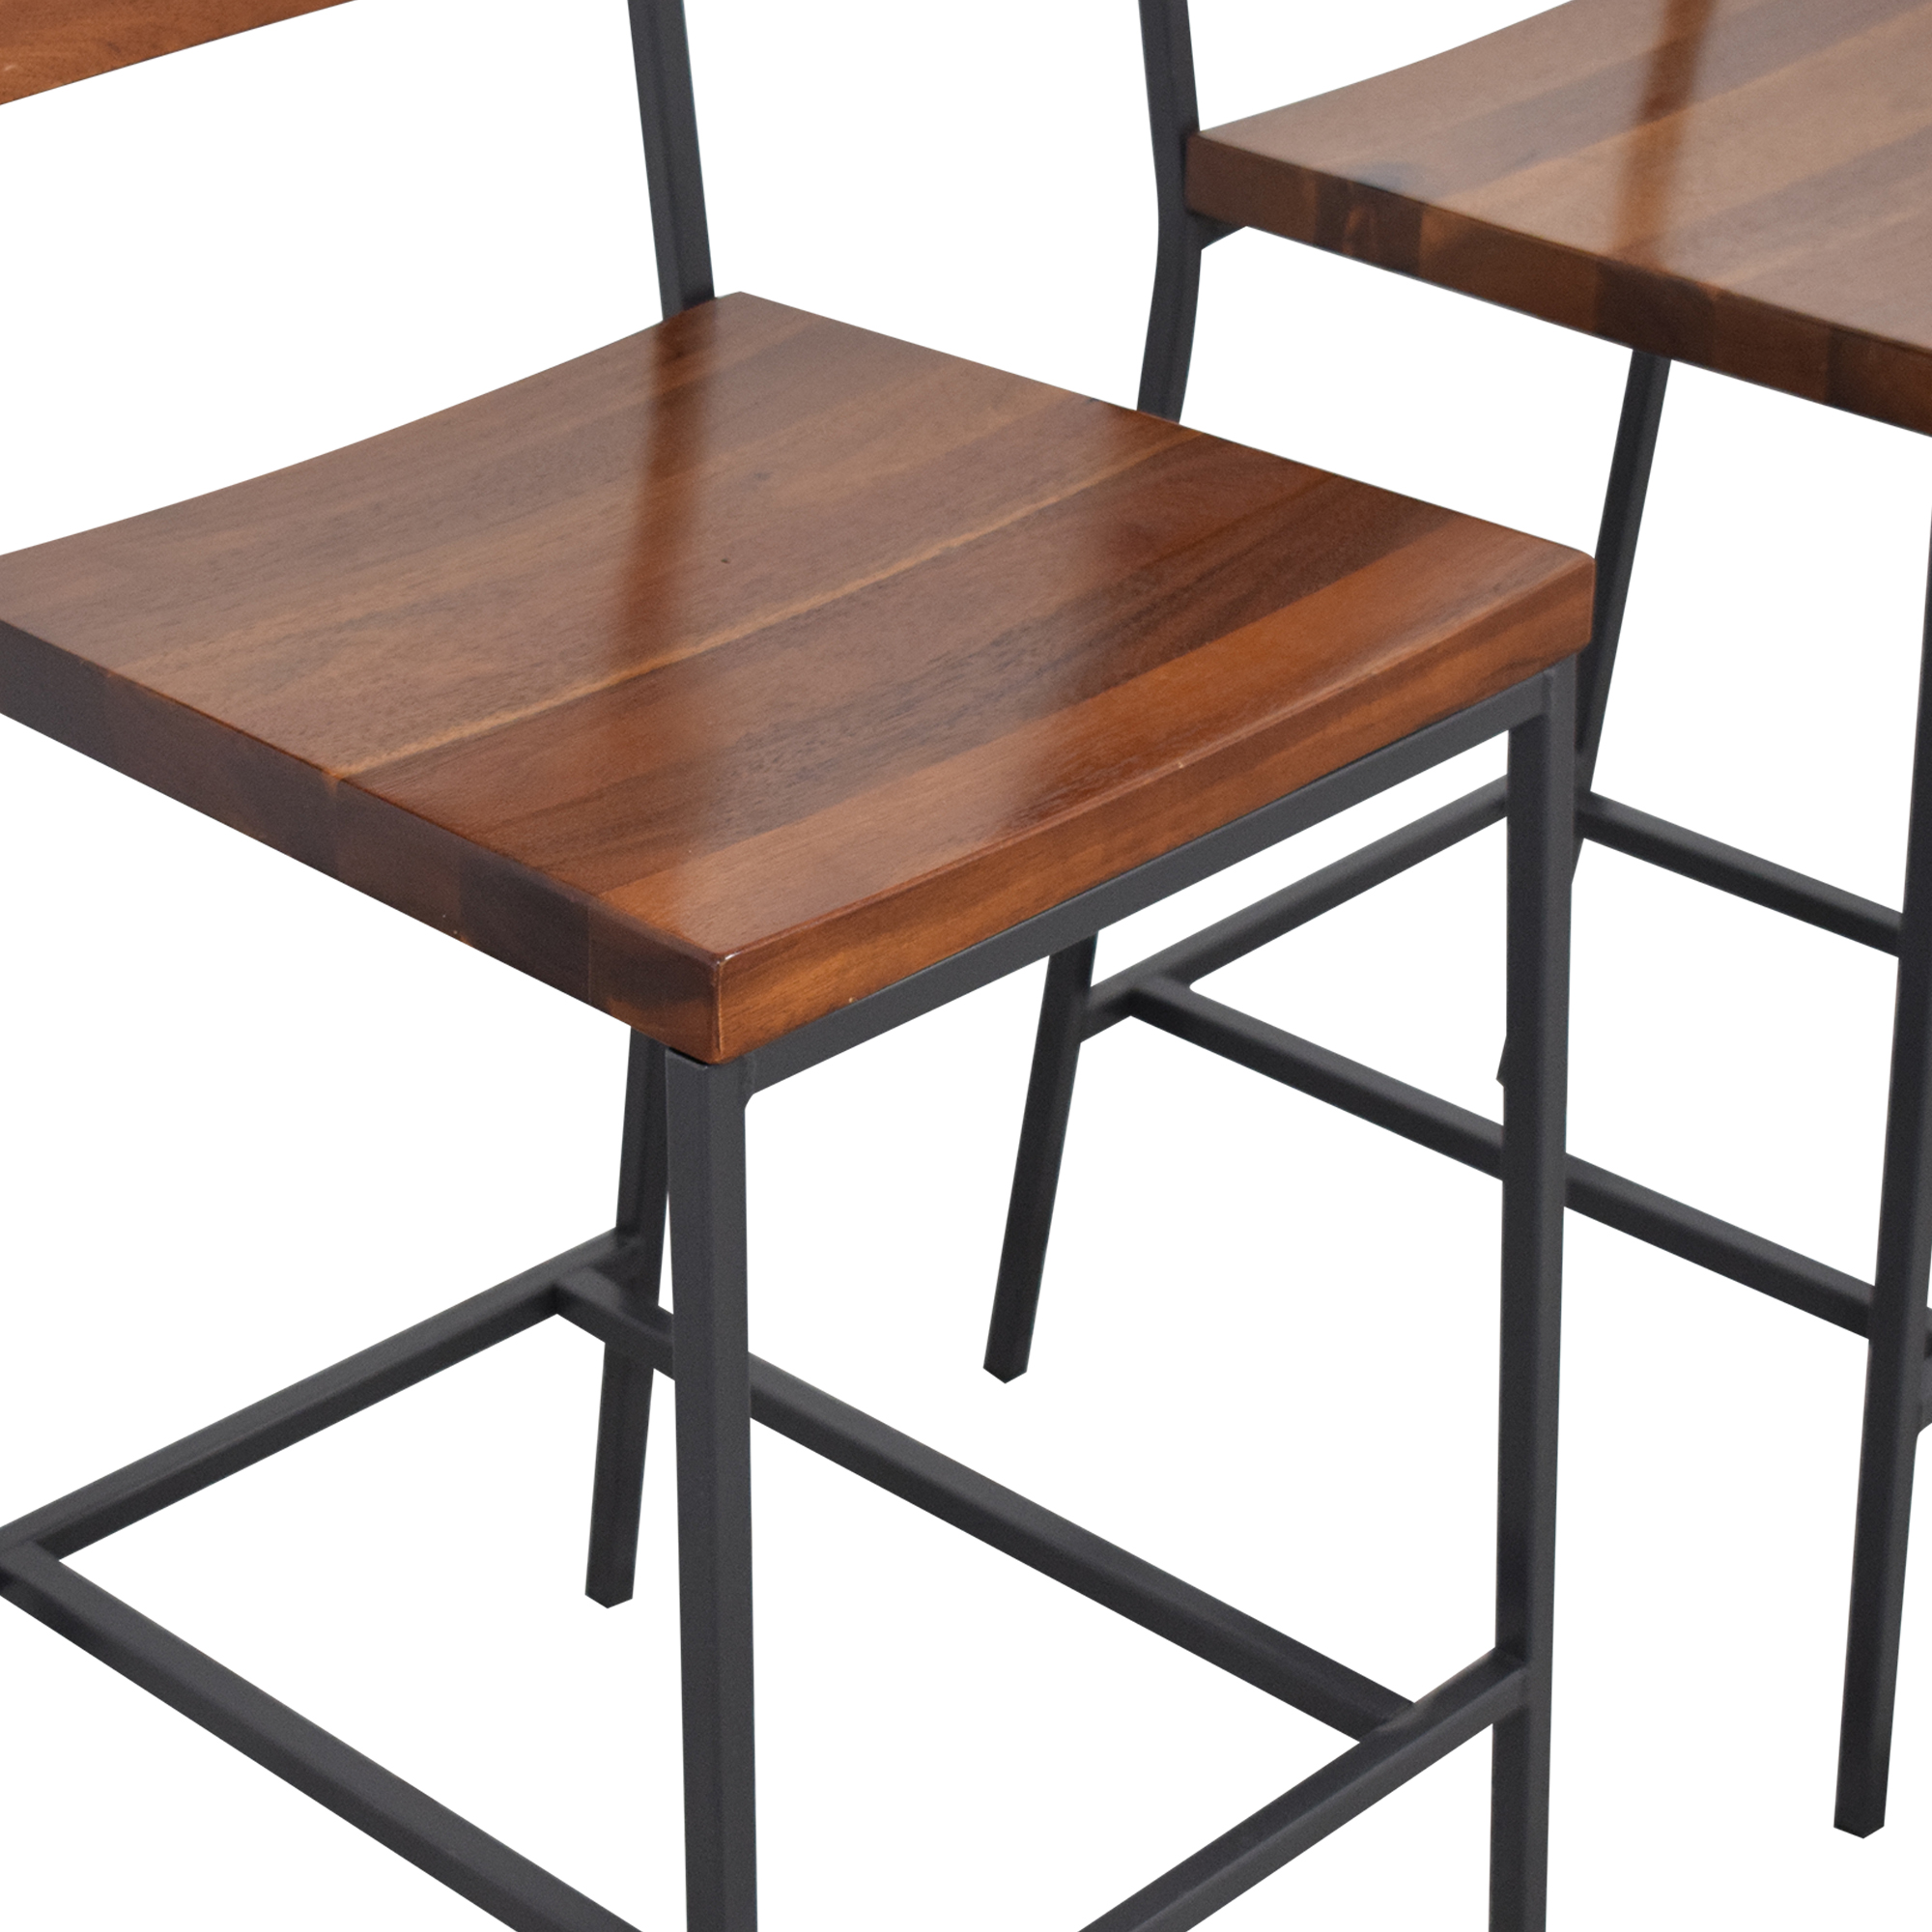 West Elm West Elm Rustic Counter Stools brown